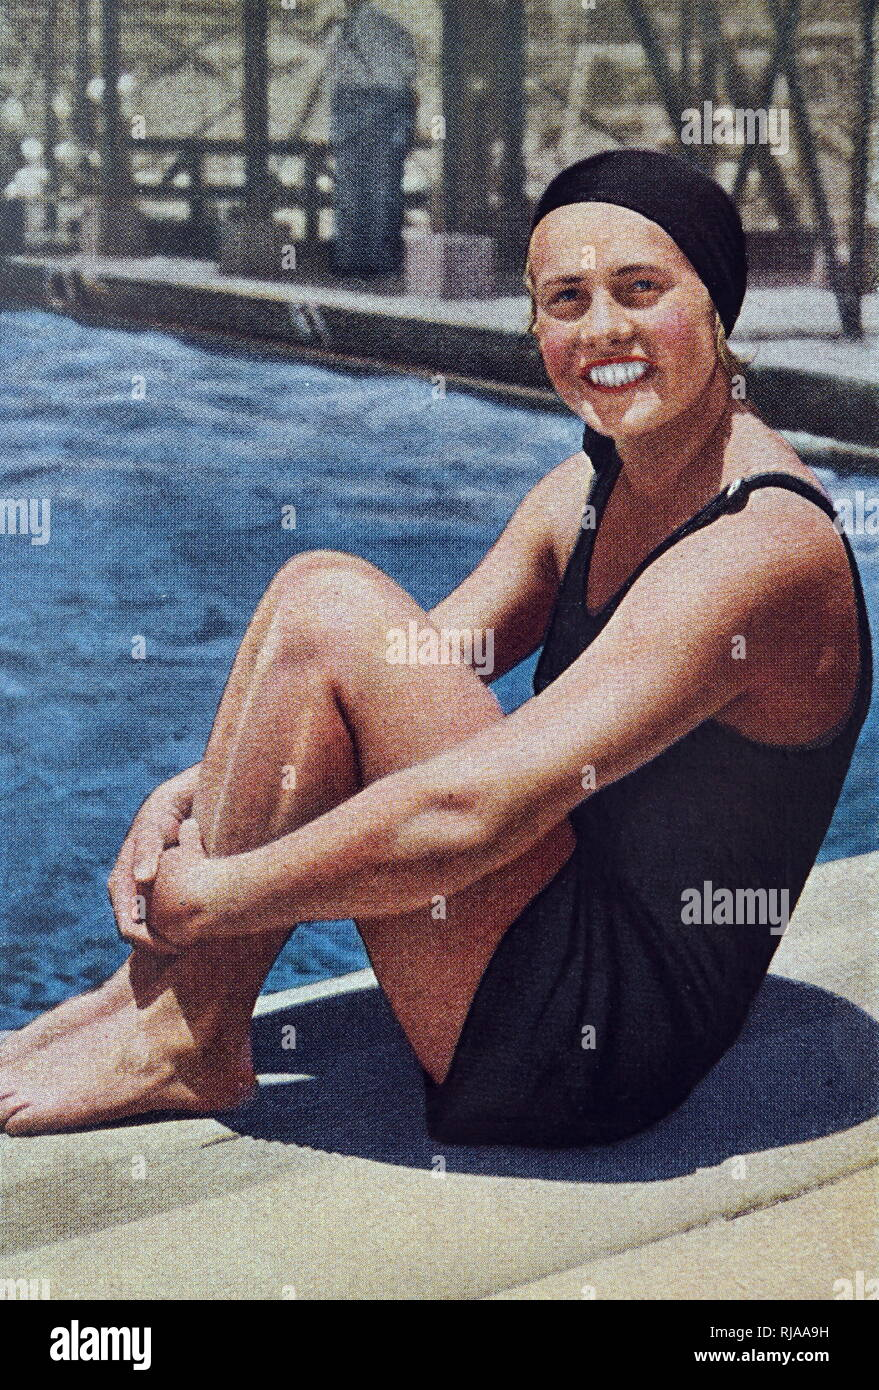 """Photograph of """"Miss Olympia"""" Ingeborg Sjoquist (1912 - 2015) who was a Swedish swimmer at the 1932 Olympic games. She turned 100 in April 2012 and was the world's oldest living Olympian from the death of Guo Jie. Stock Photo"""